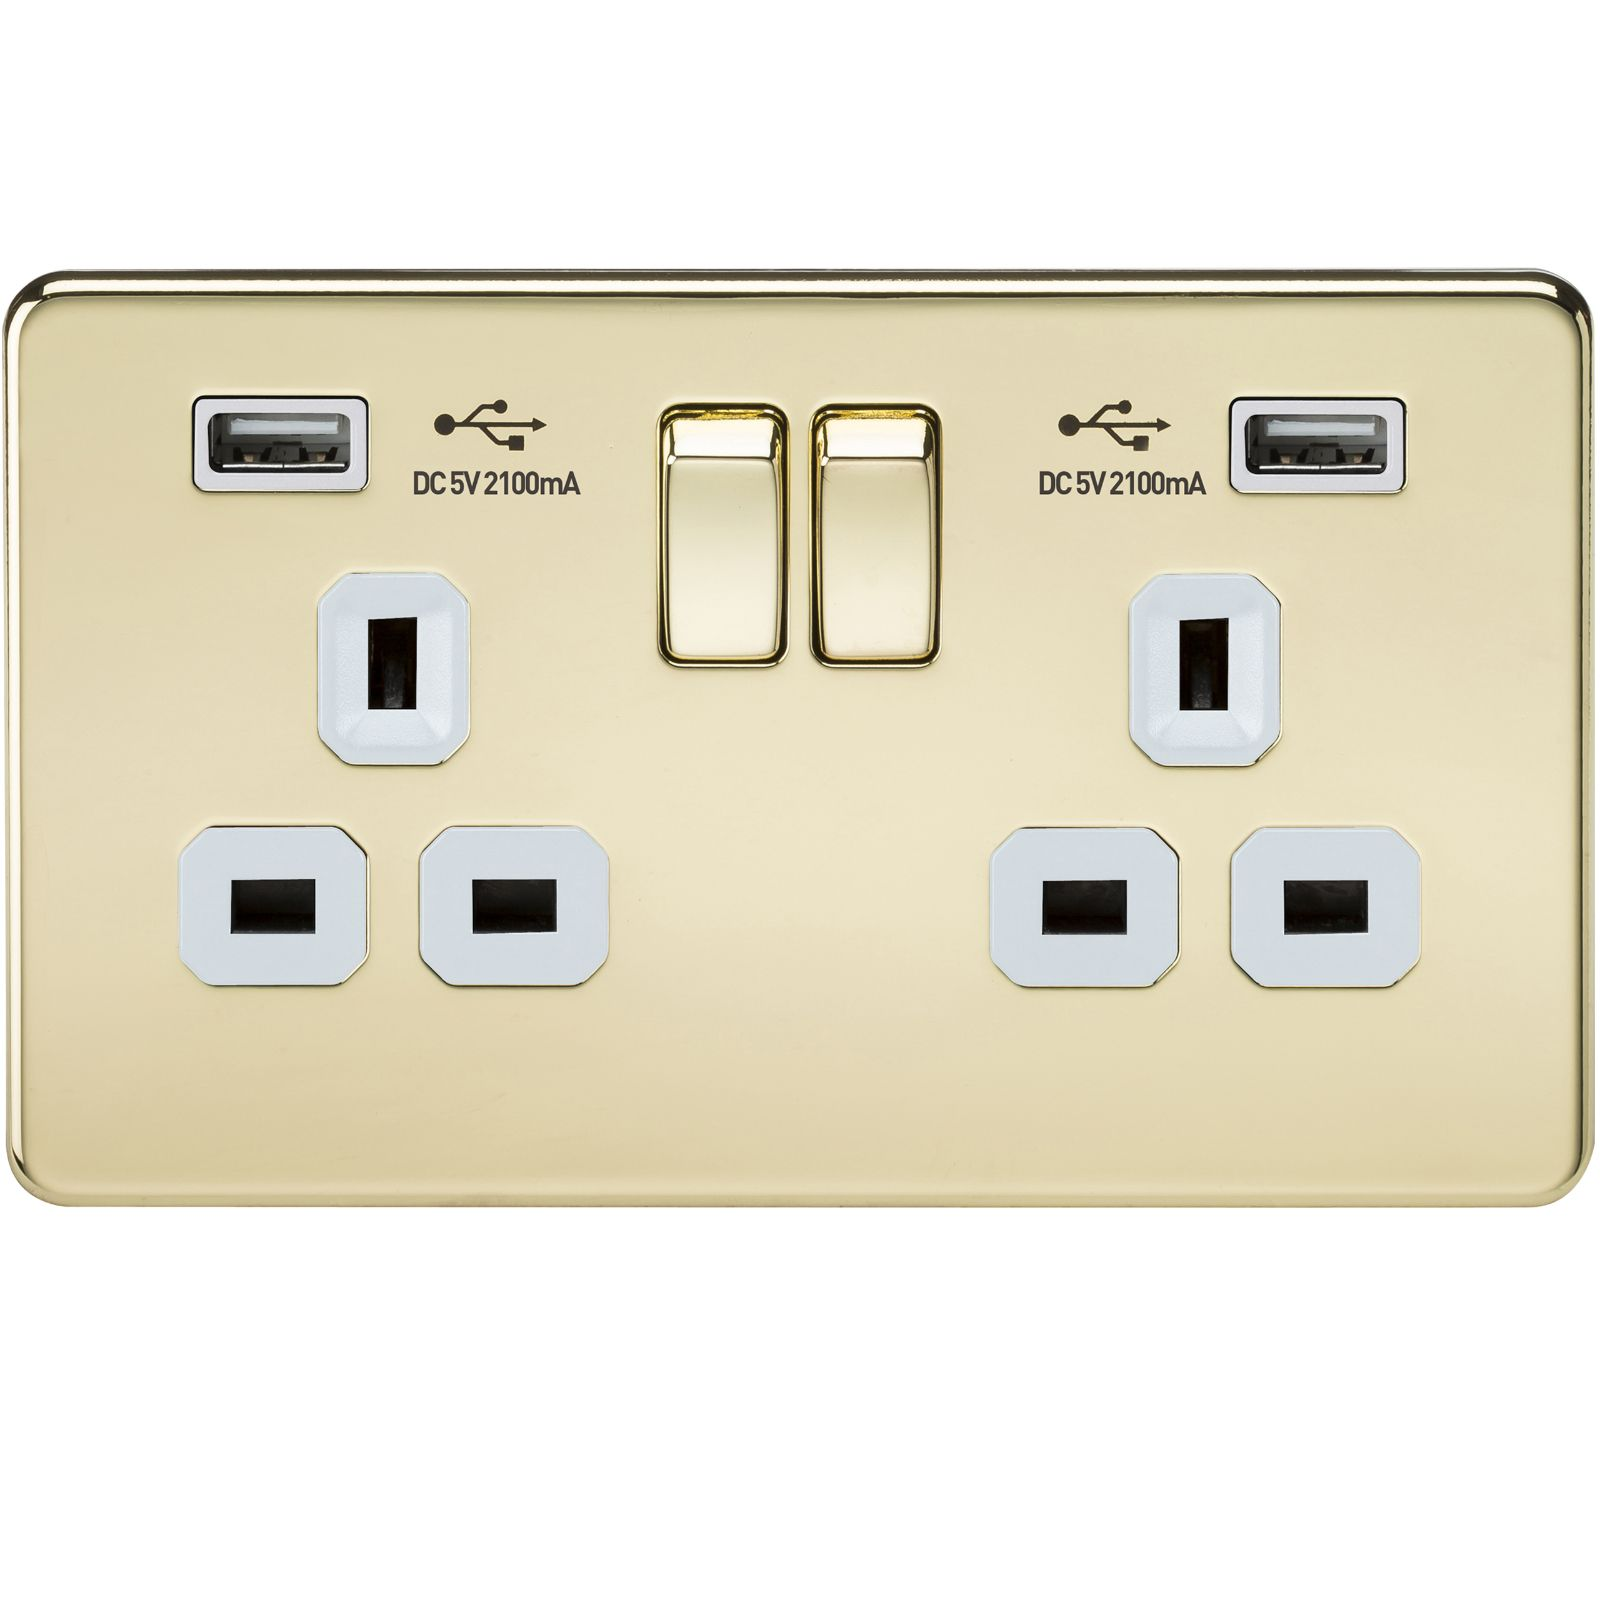 Screwless-Flat-Plate-Electrical-Light-Switches-Plug-Sockets ... for Wall Switches And Sockets  104xkb